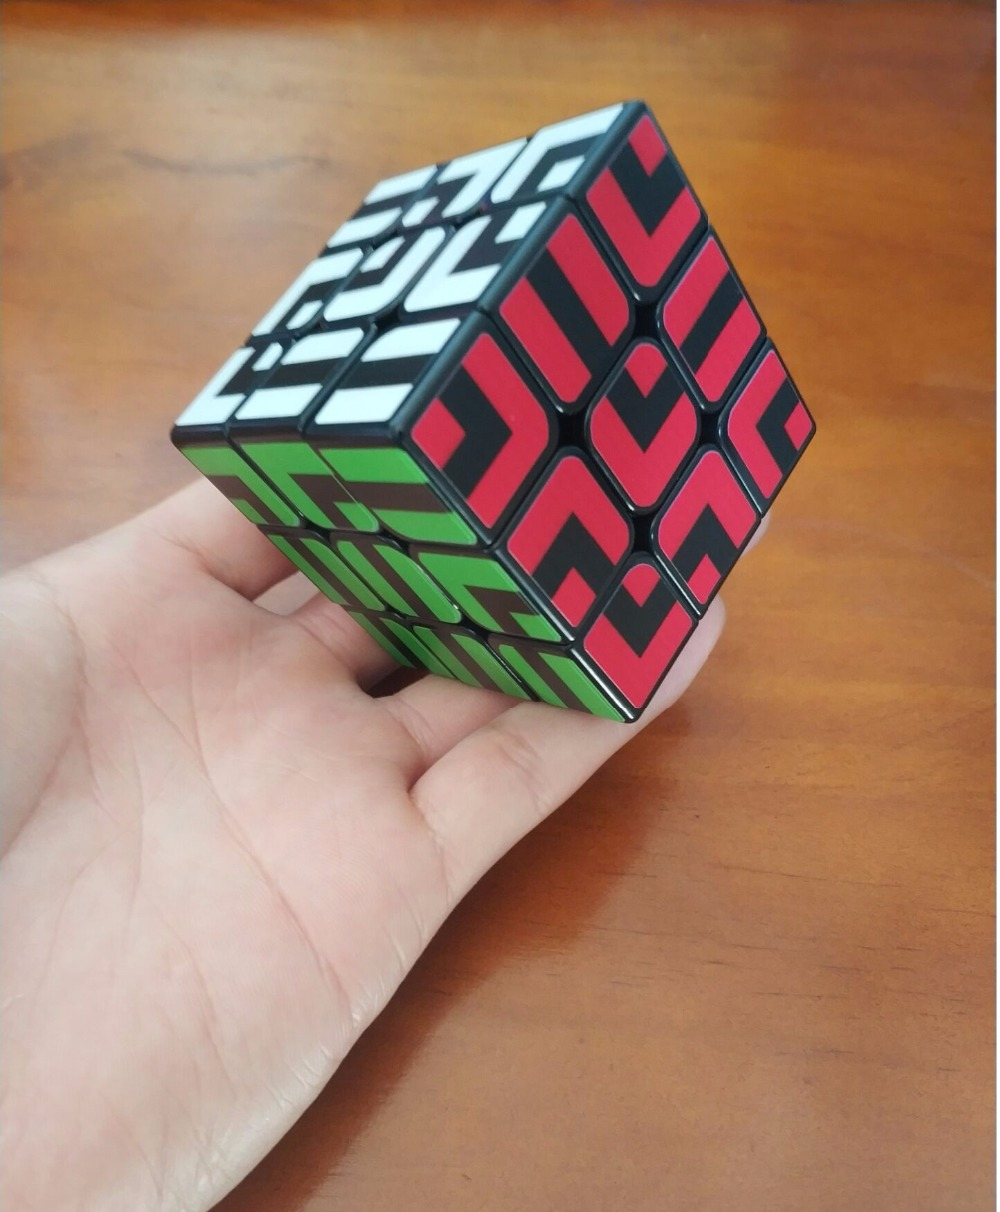 New Arrival ZCUBE Colorful Sticker 3x3x3 Cube 3x3 Speed Cube Professional 3 Player Triangle Shape Twist Educational Kid Toys